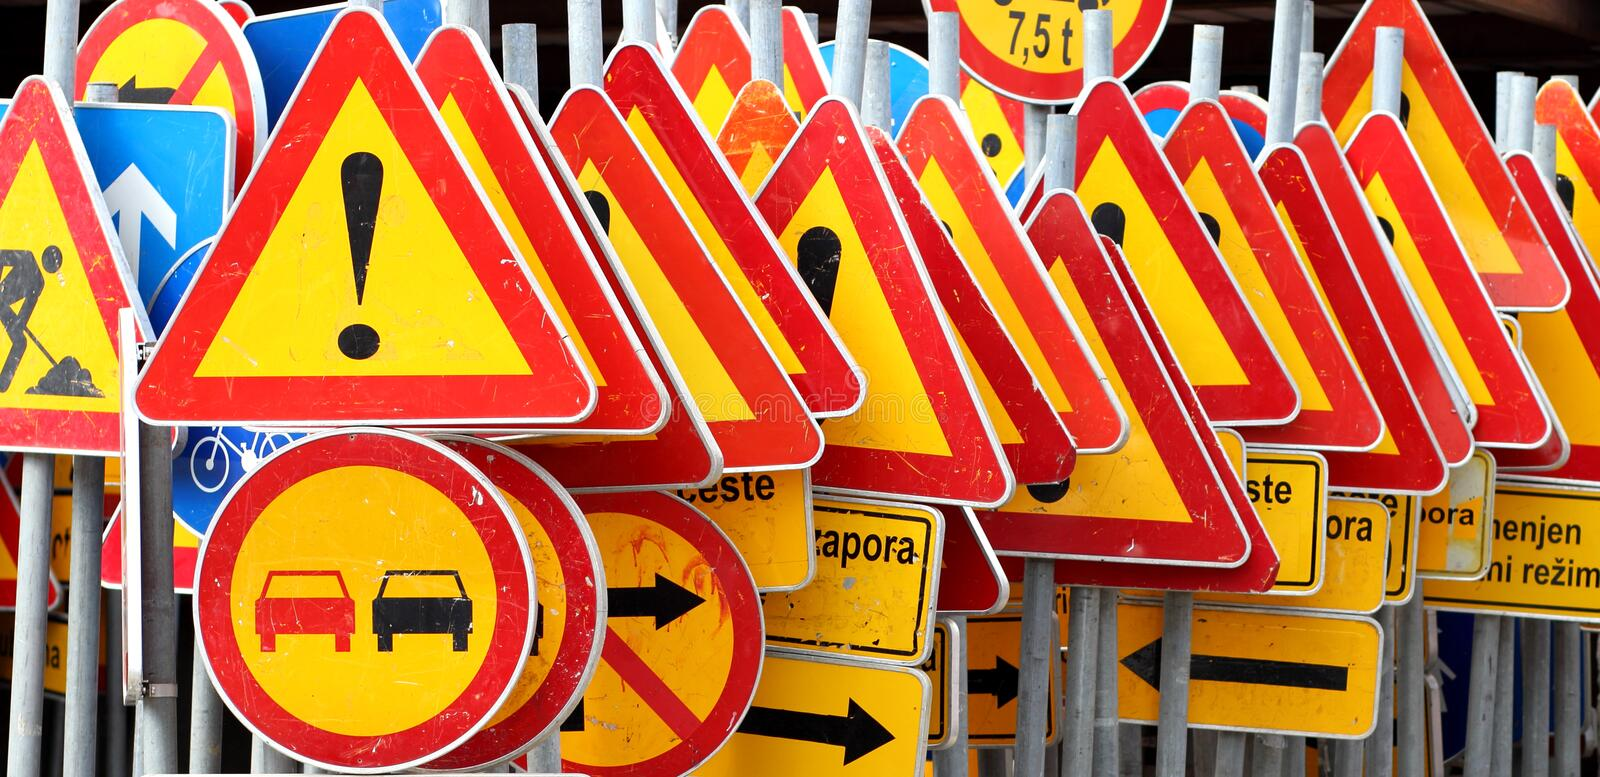 Different colored traffic signs royalty free stock photos